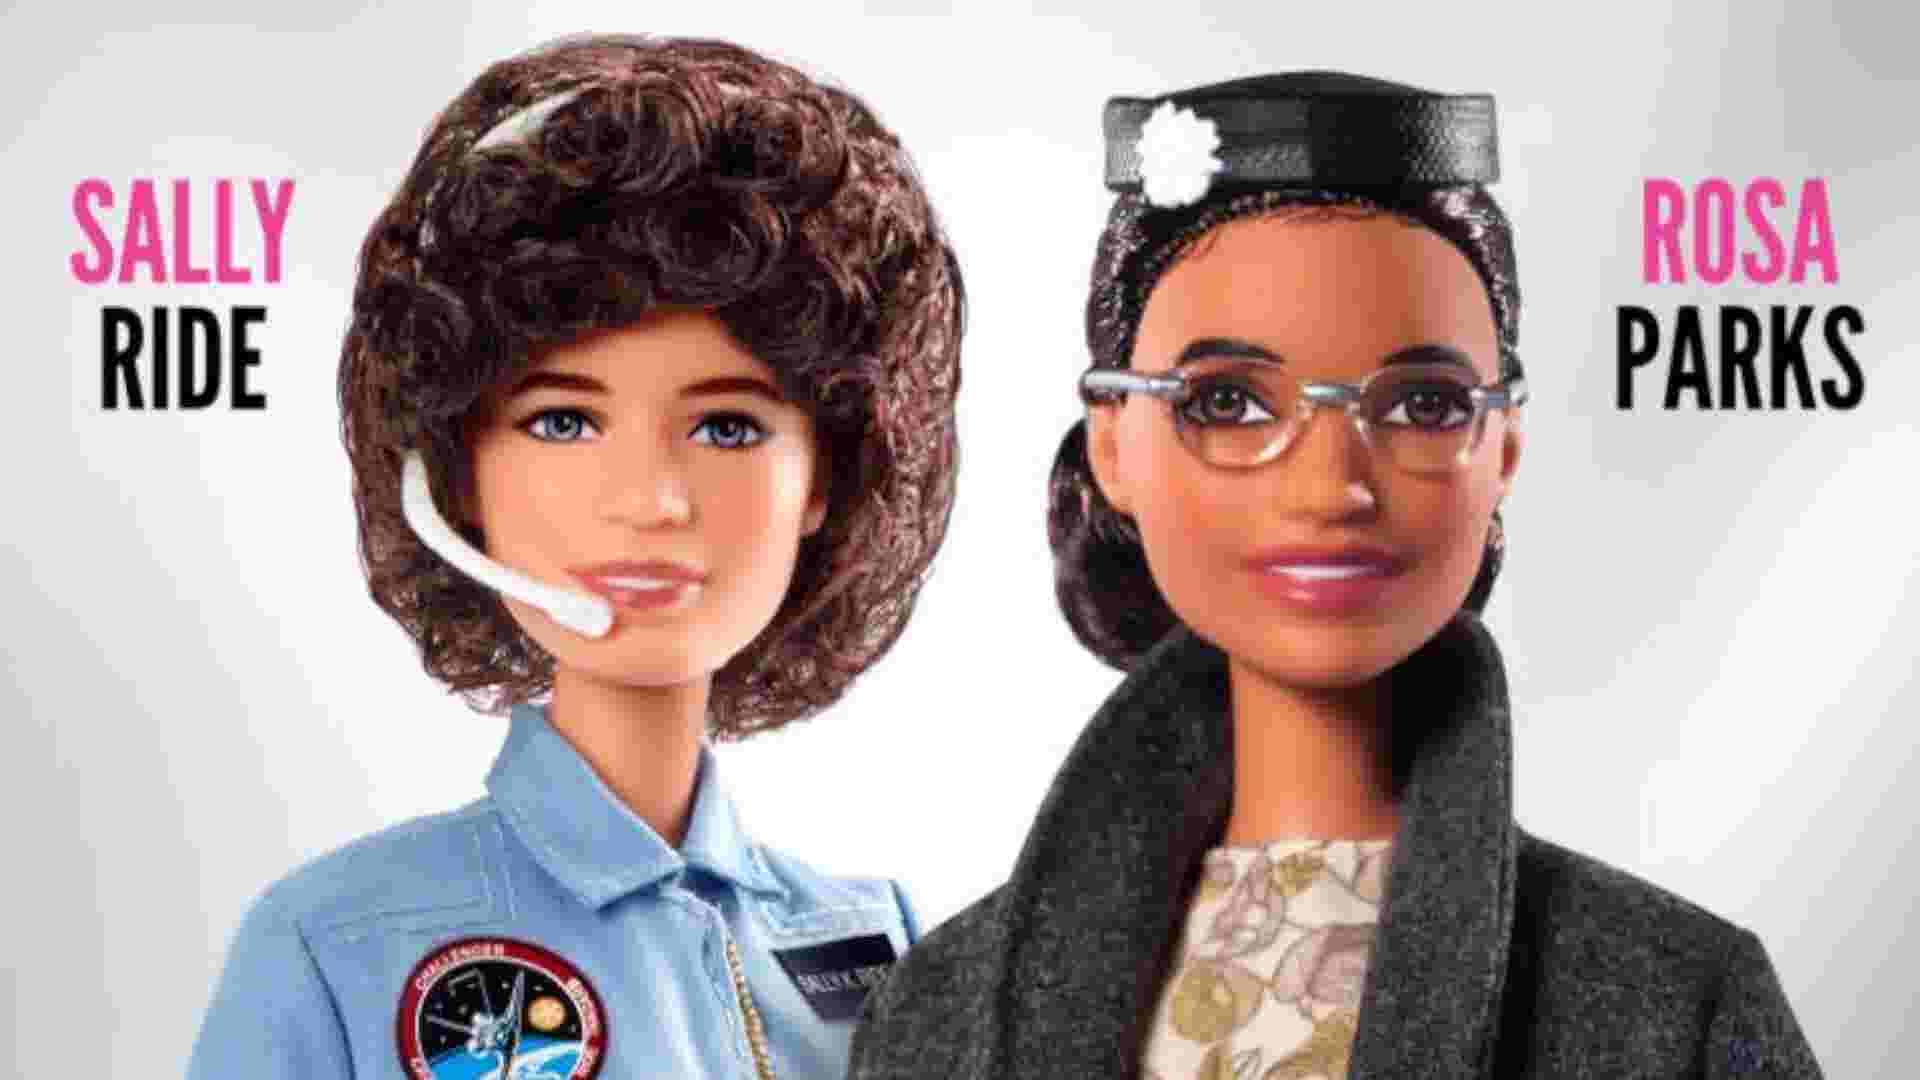 Barbie Unveils Dolls Inspired By Rosa Parks And Sally Ride